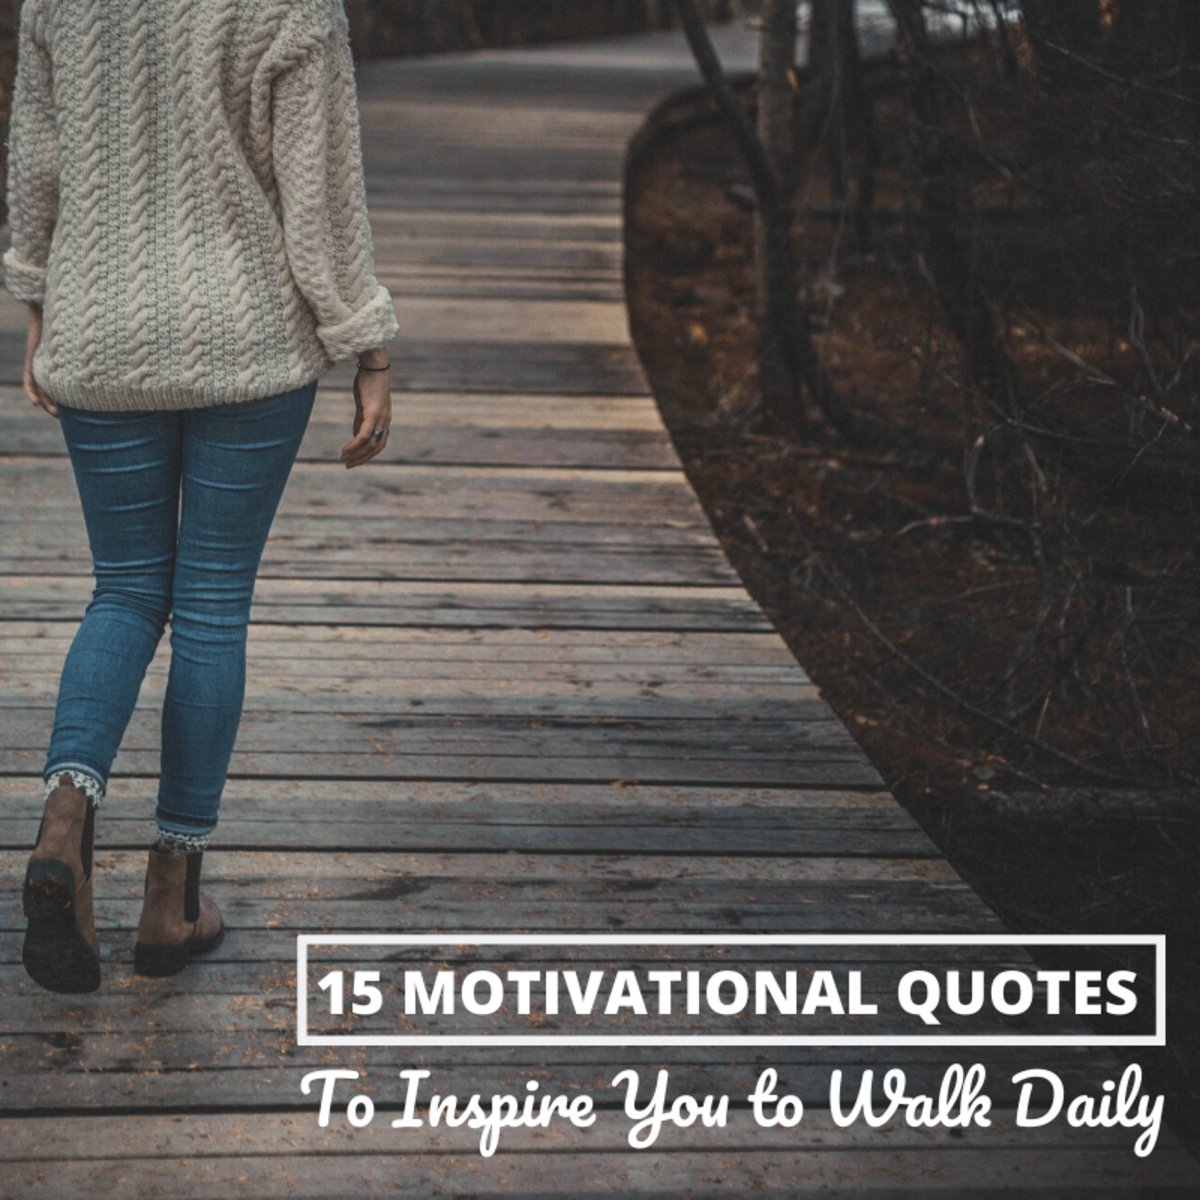 Walking is a healthy and rewarding habit. Here are some quotes to help you stay motivated to walk every day.